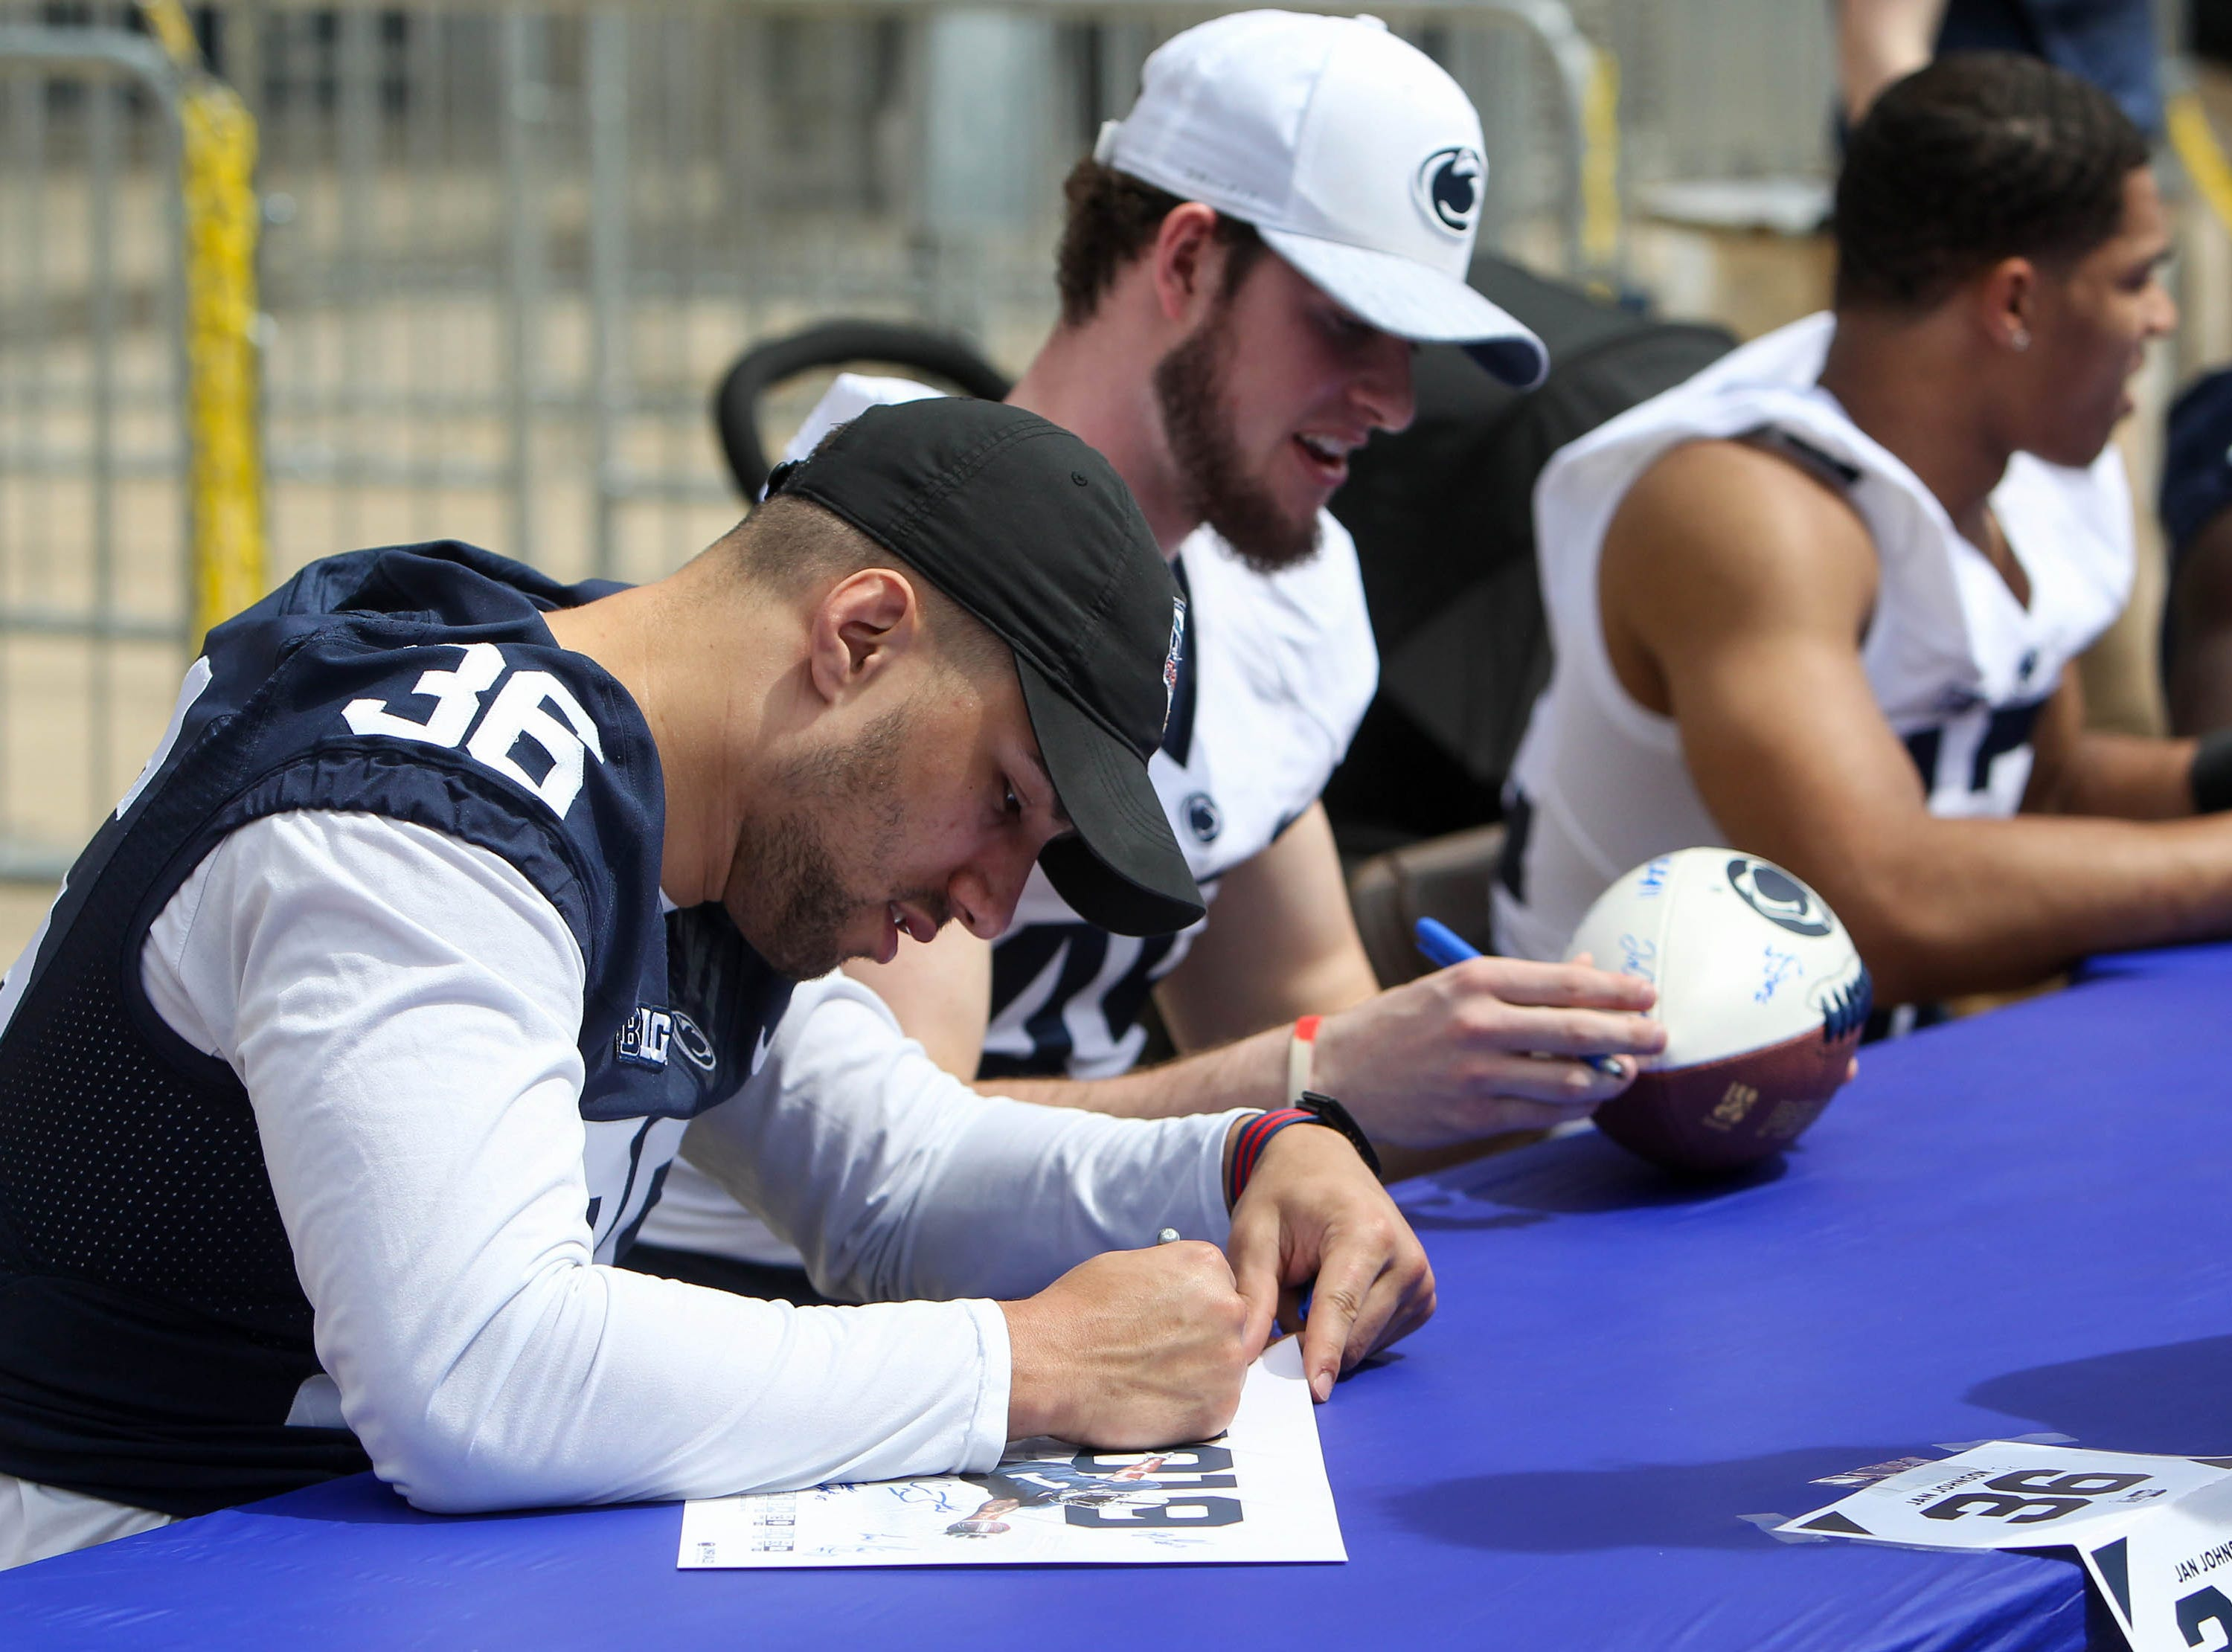 Apr 13, 2019; University Park, PA, USA; Penn State Nittany Lions linebacker Jan Johnson (36) signs an autograph for a fan prior to the Blue White spring game at Beaver Stadium. Mandatory Credit: Matthew O'Haren-USA TODAY Sports